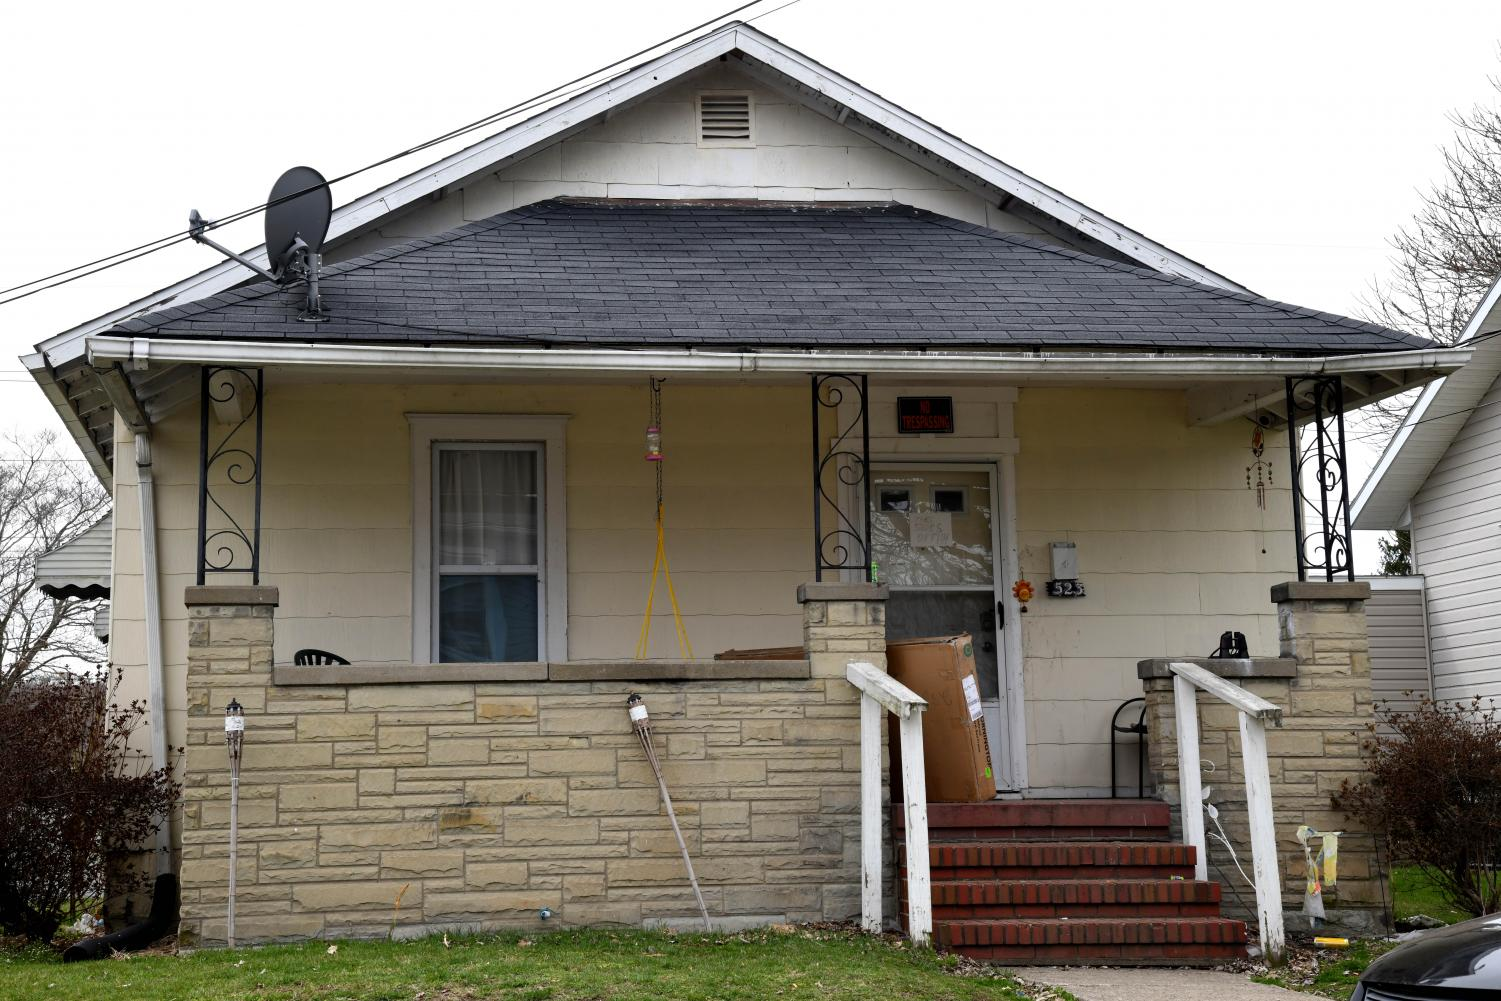 Personnel from the Zanesville Police Department were executing a search warrant at 523 Schaum Tuesday.